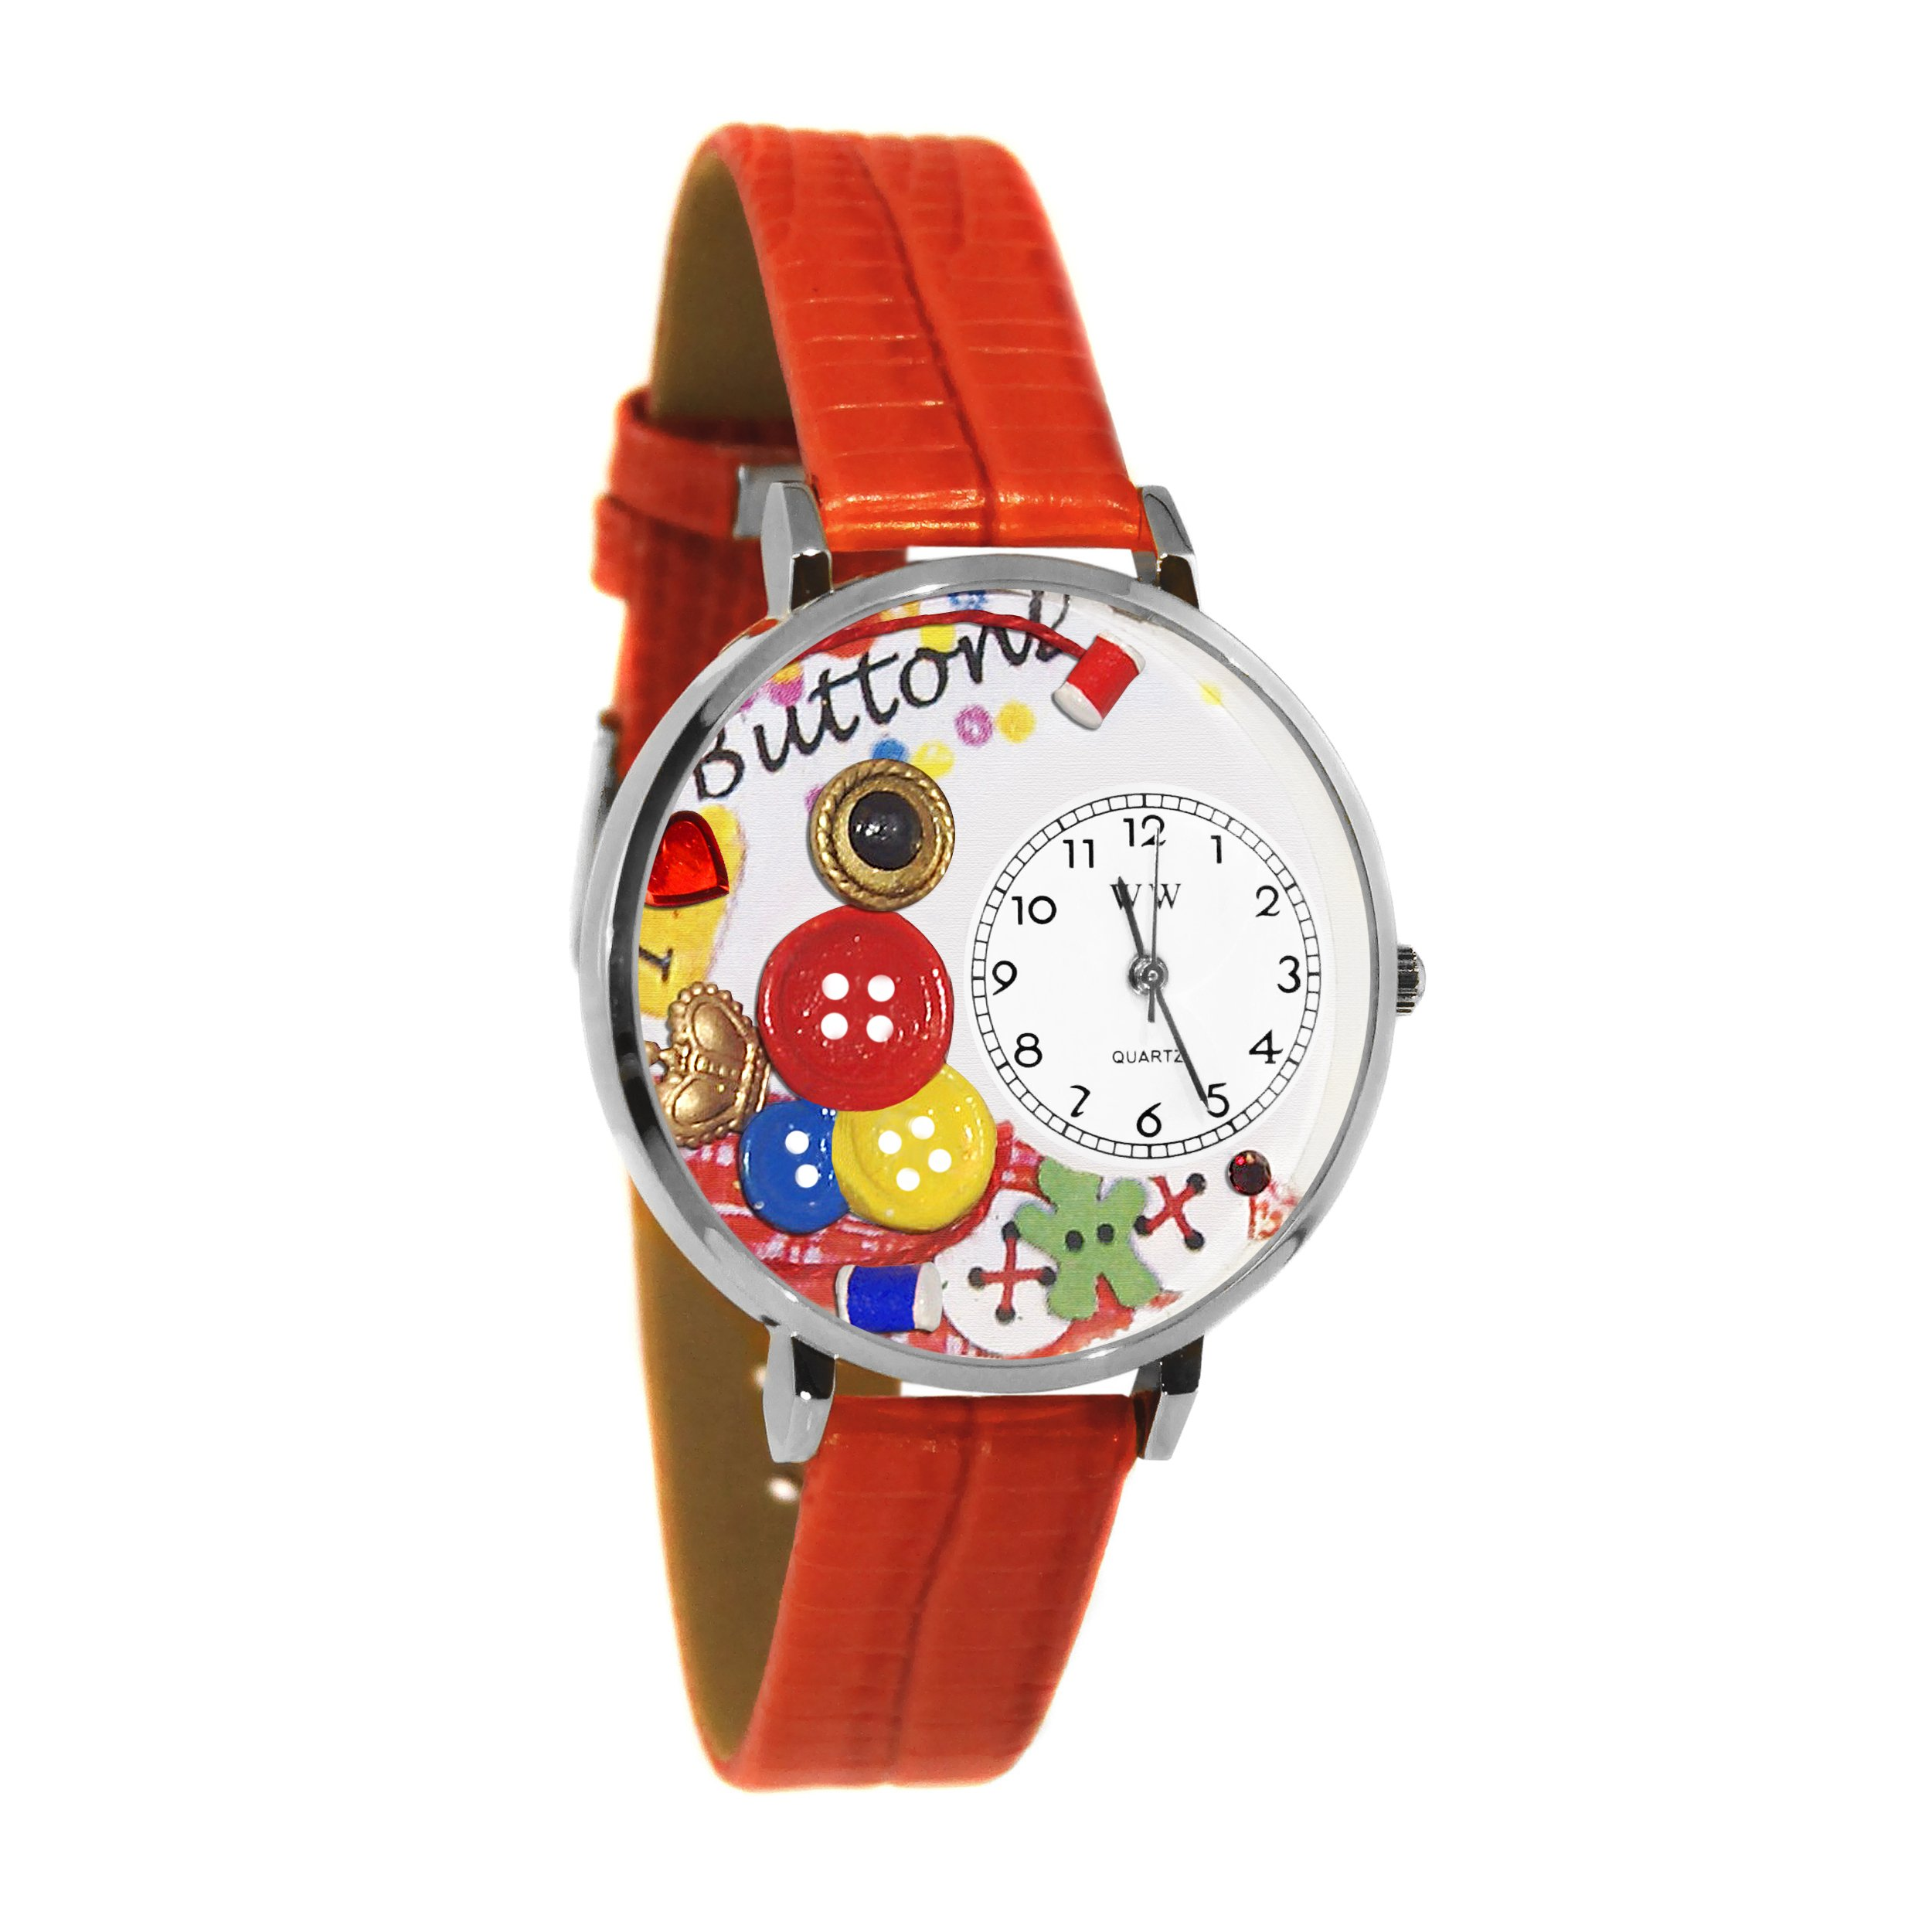 Whimsical Watches Unisex U0410011 I Love Buttons Red Leather Watch